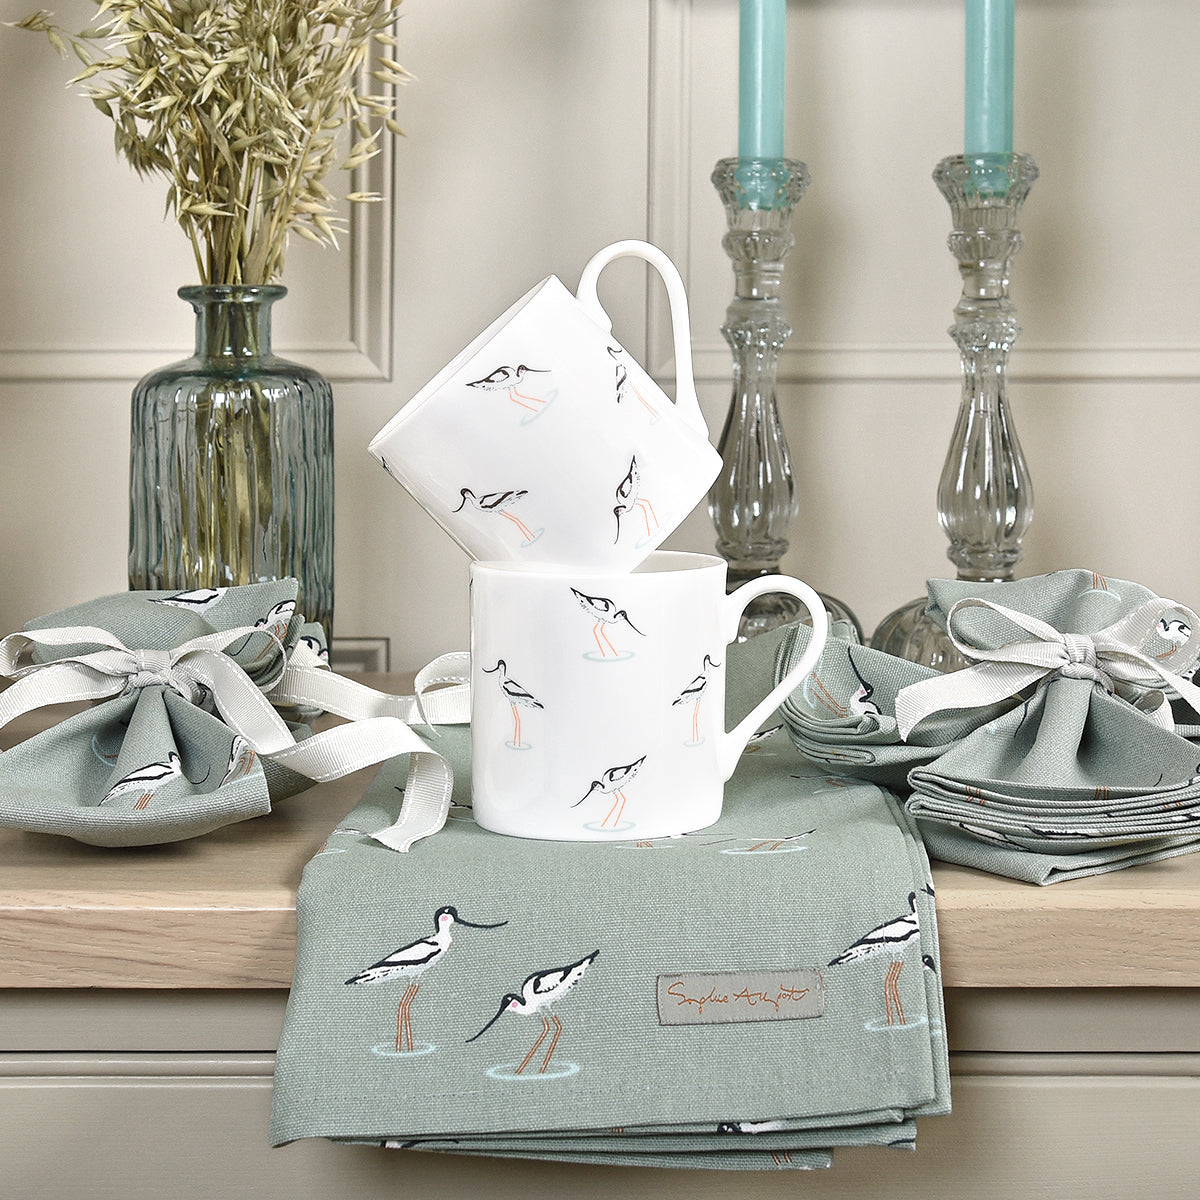 Sea blue green tea towel in Sophie Allport's Coastal Birds design